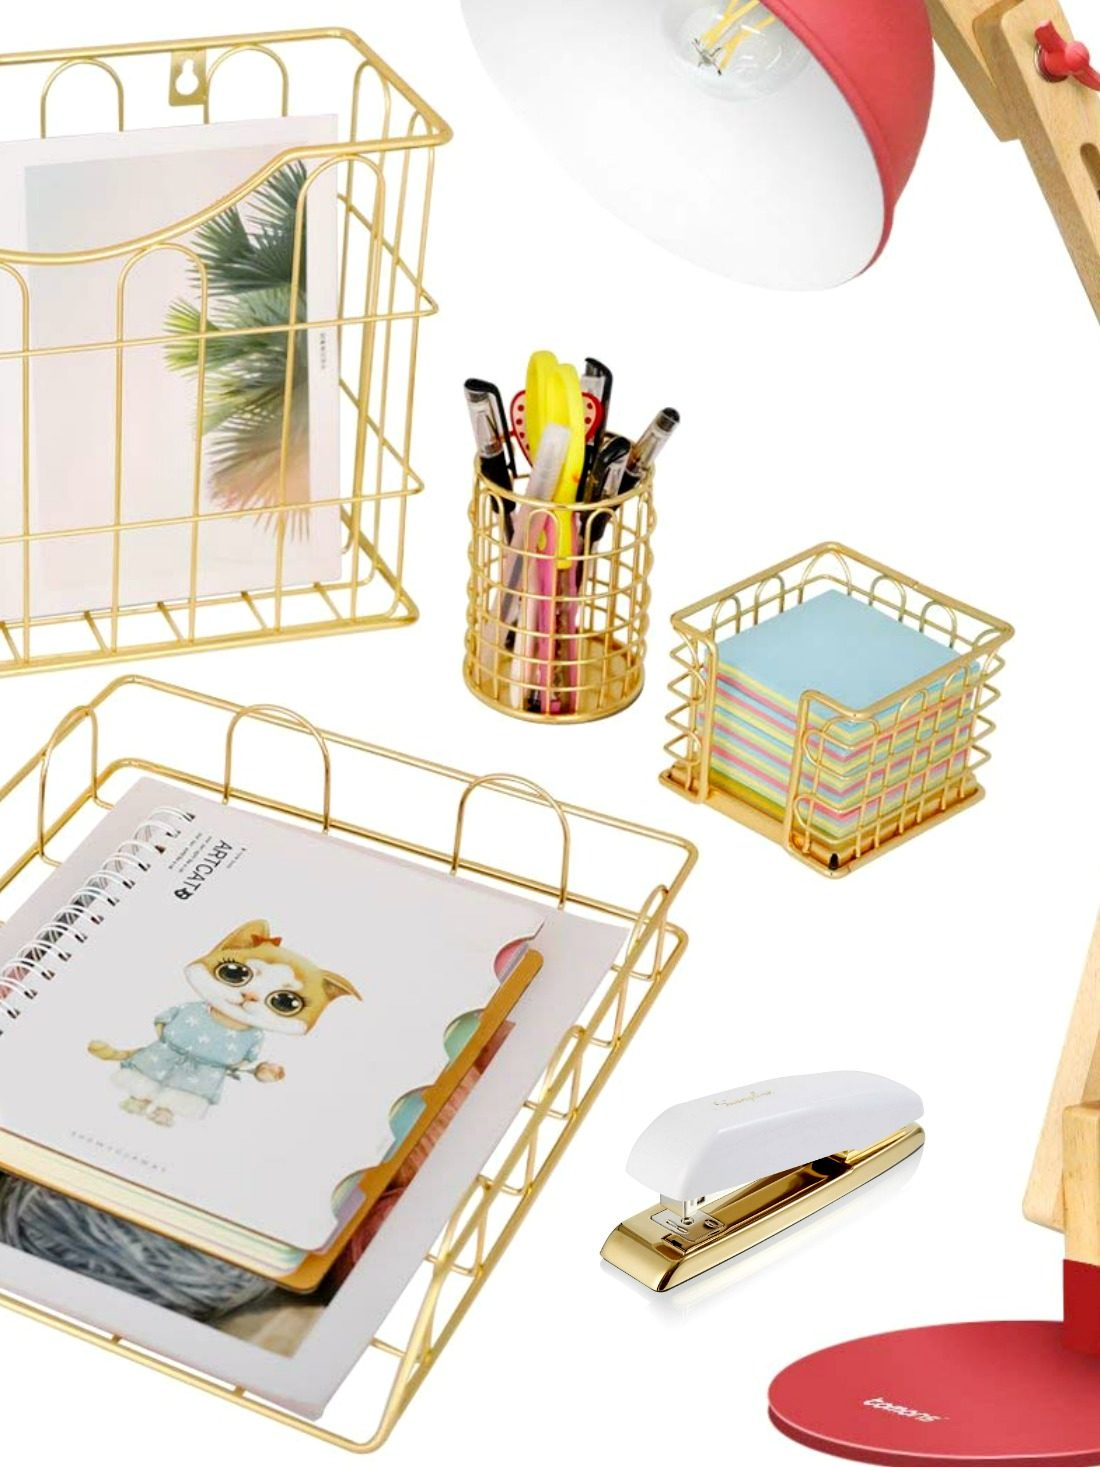 We have outlined everything from the cool meets simple yet something that's modern in our list of the best desk accessories for women. Want to know the secret to make your office look nice? Check out this post!